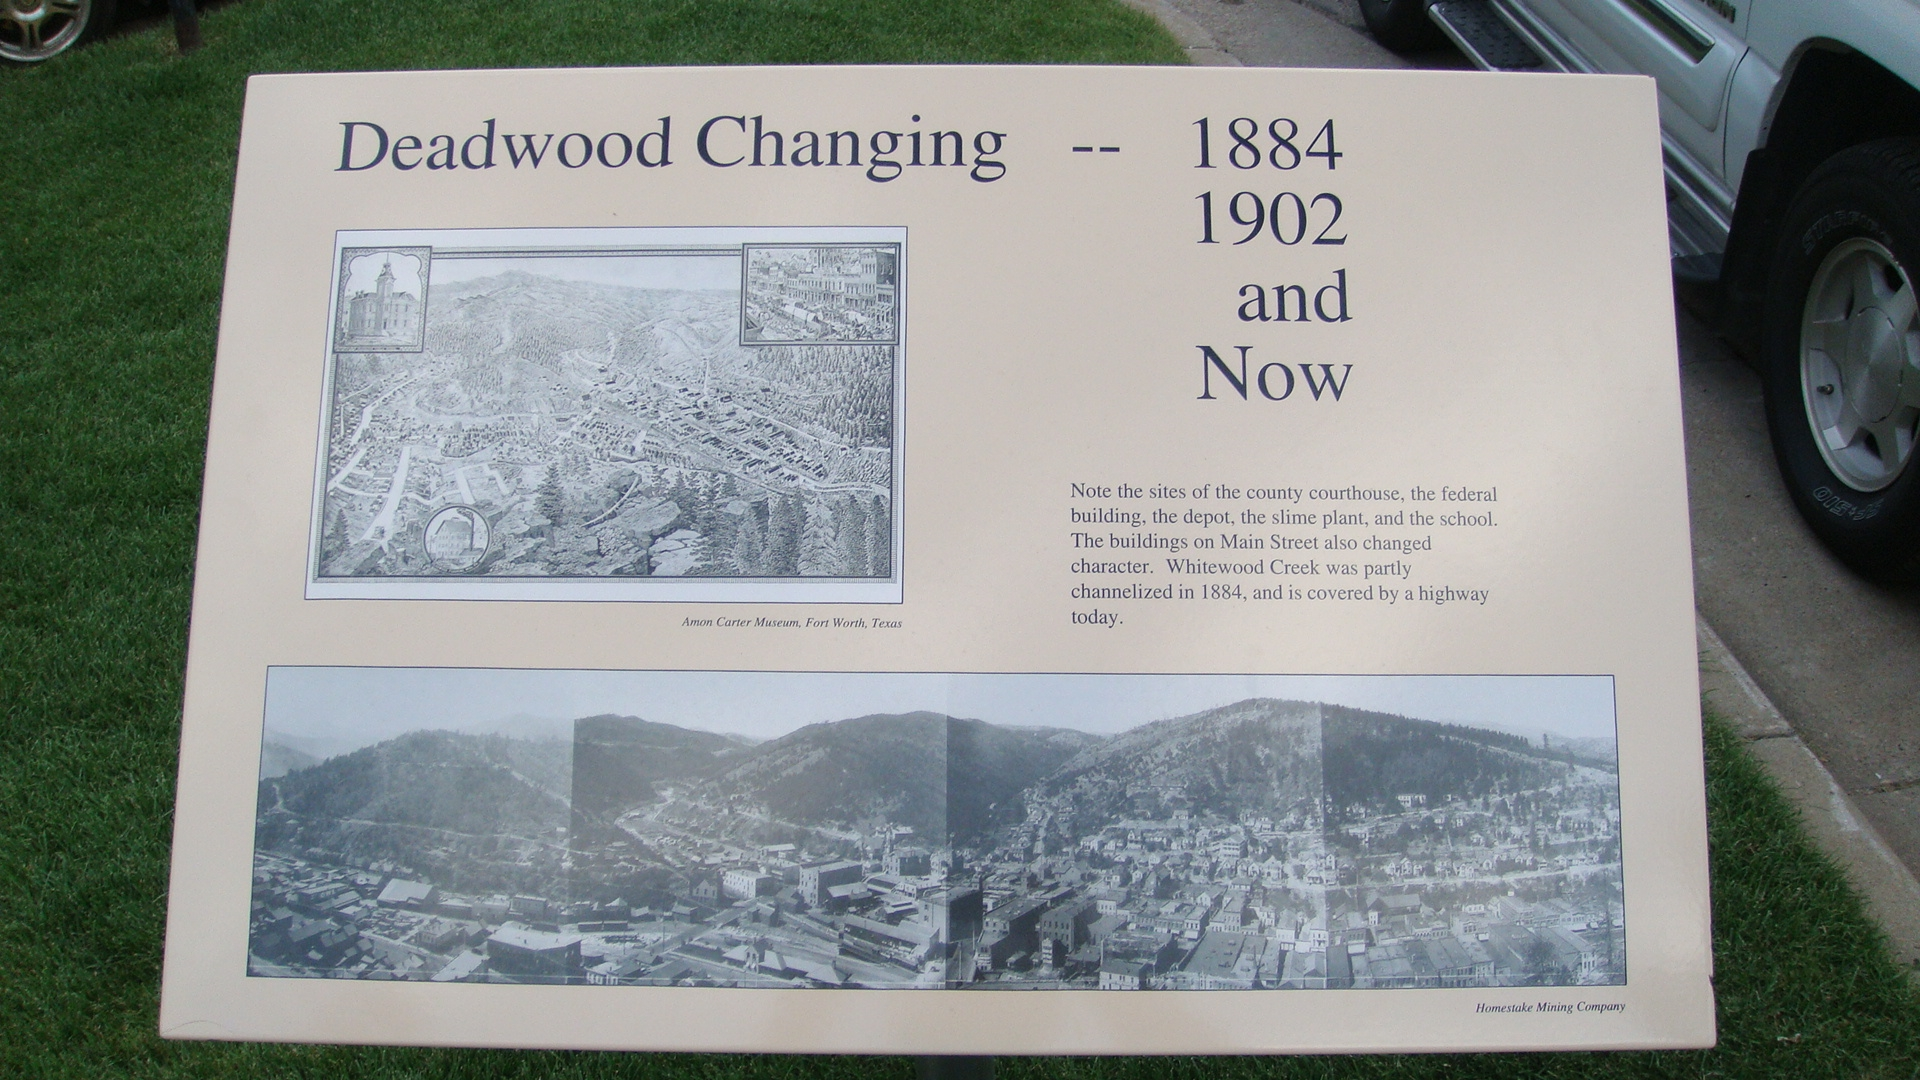 Deadwood Changing -- 1884 1902 and Now Marker